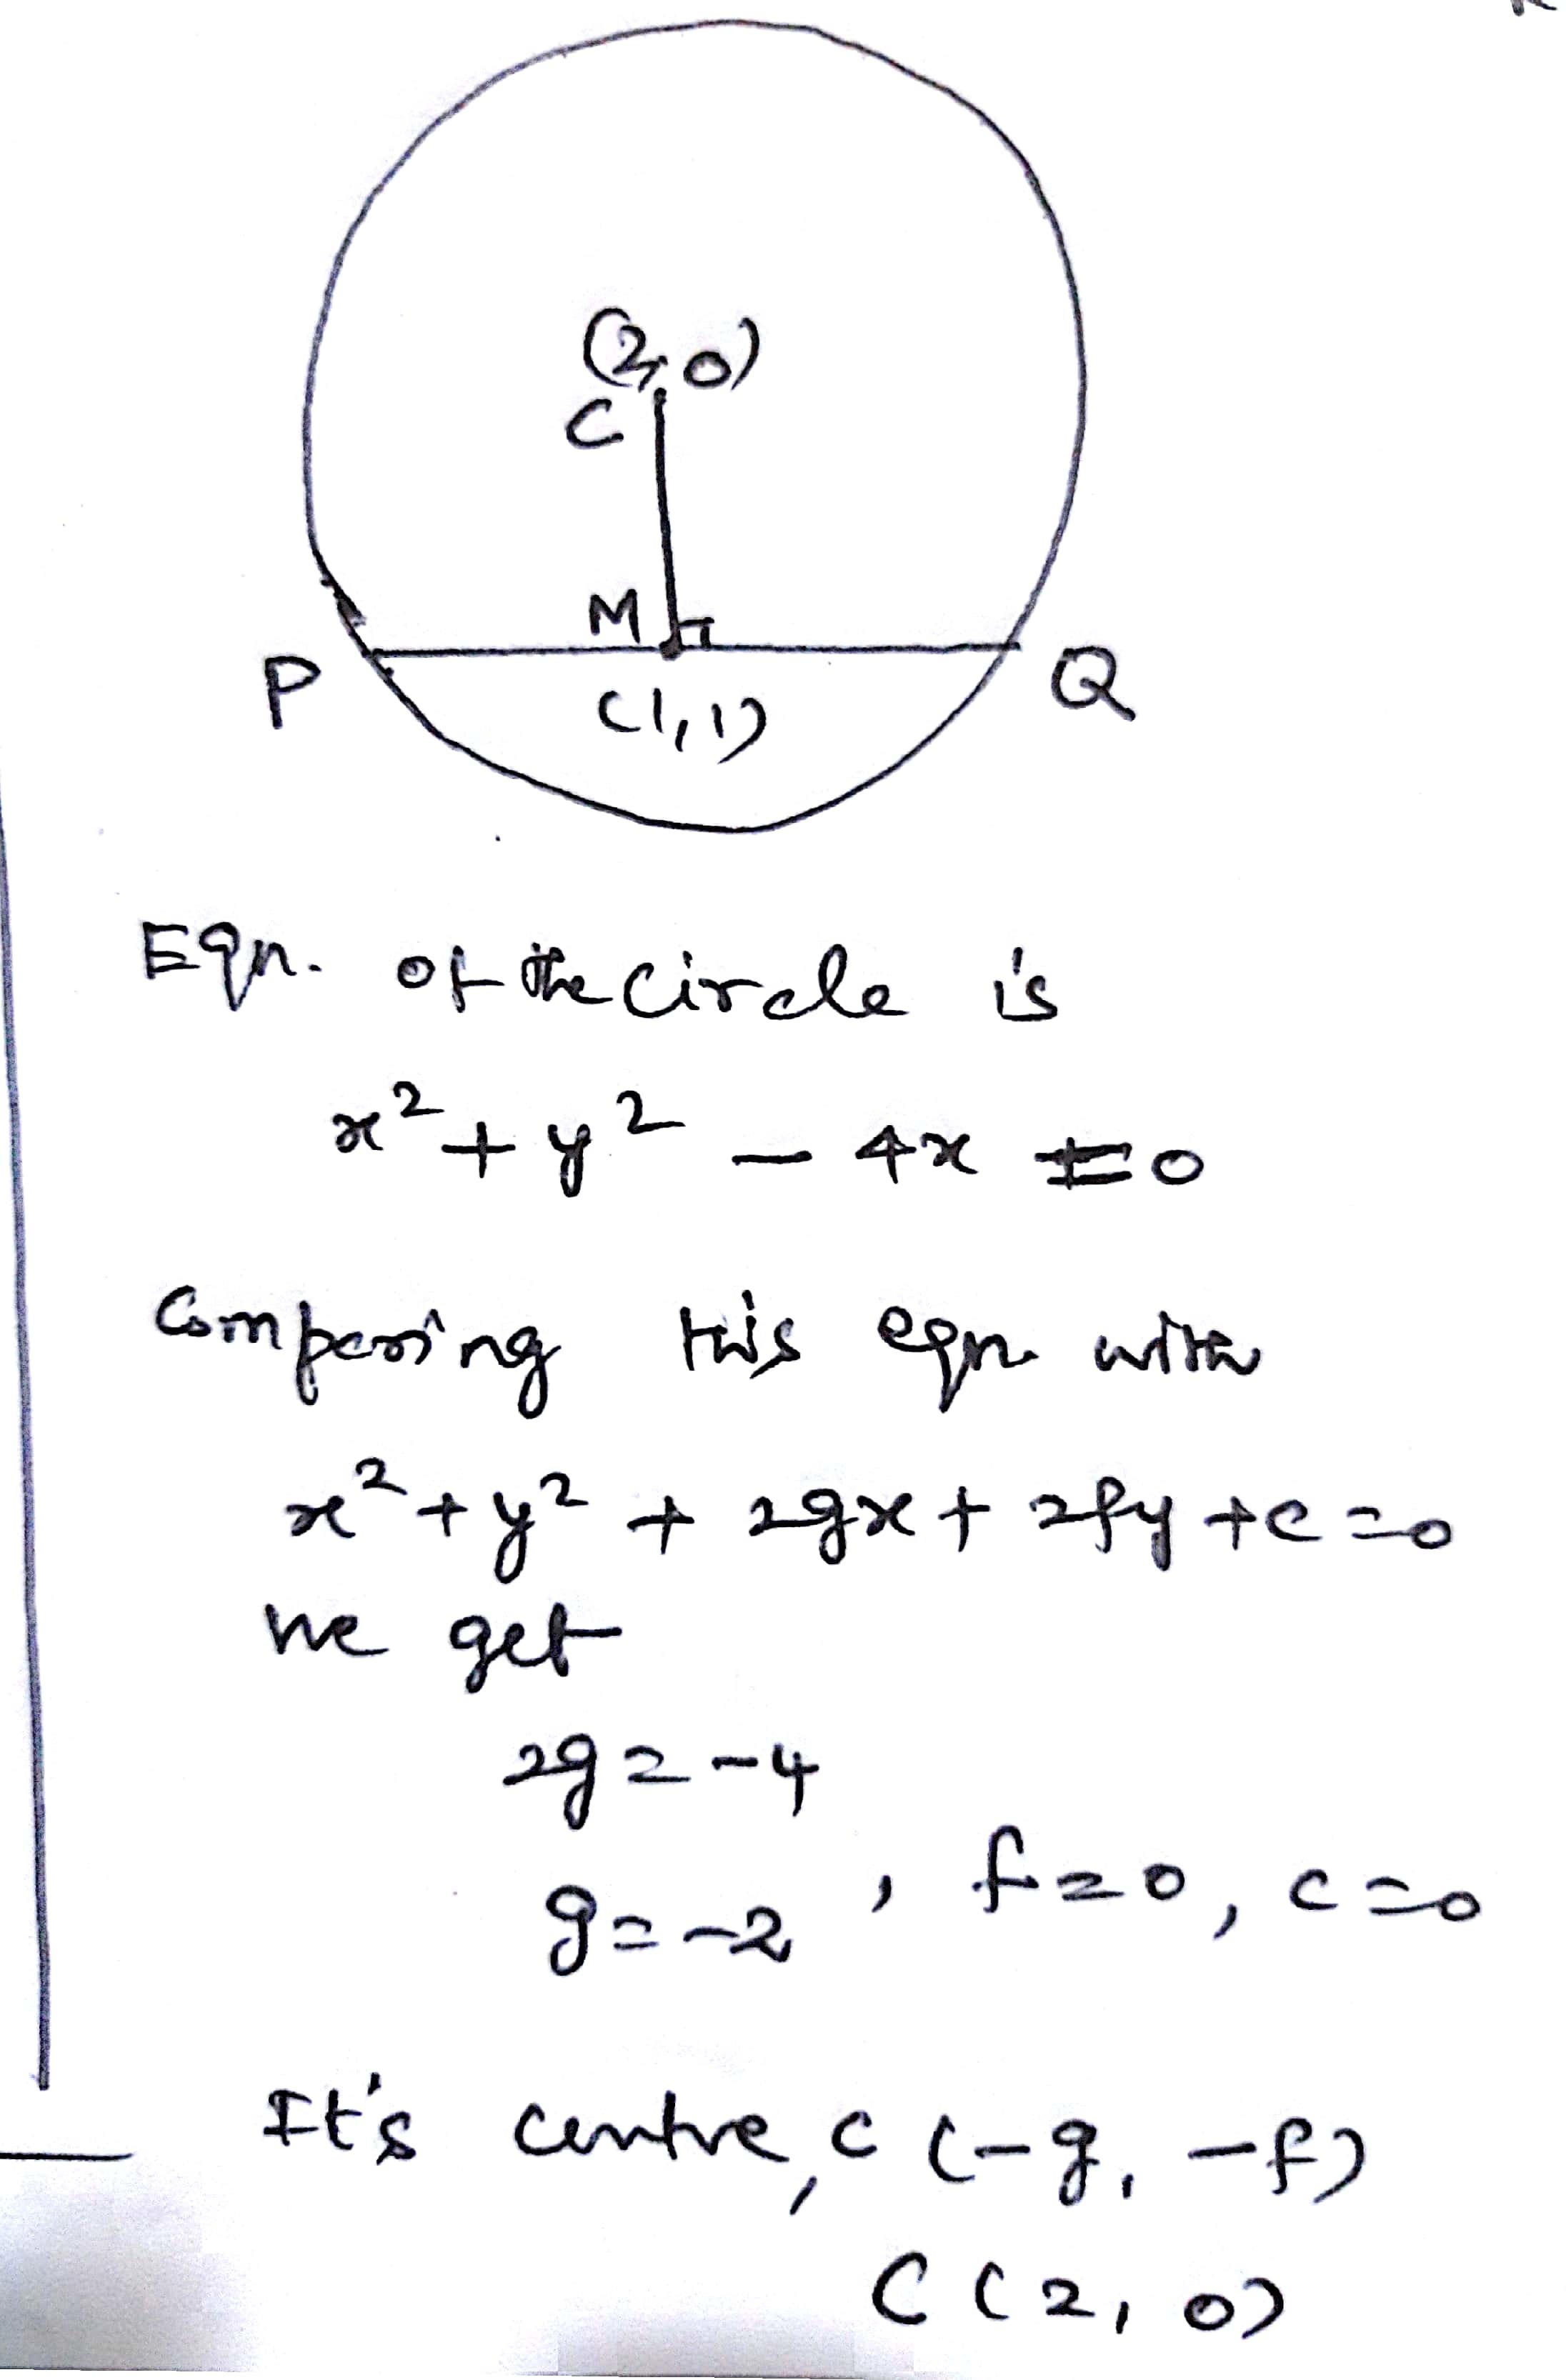 Find The Equation Of The Chord Of The Circle X 2 Y 2 4x 0